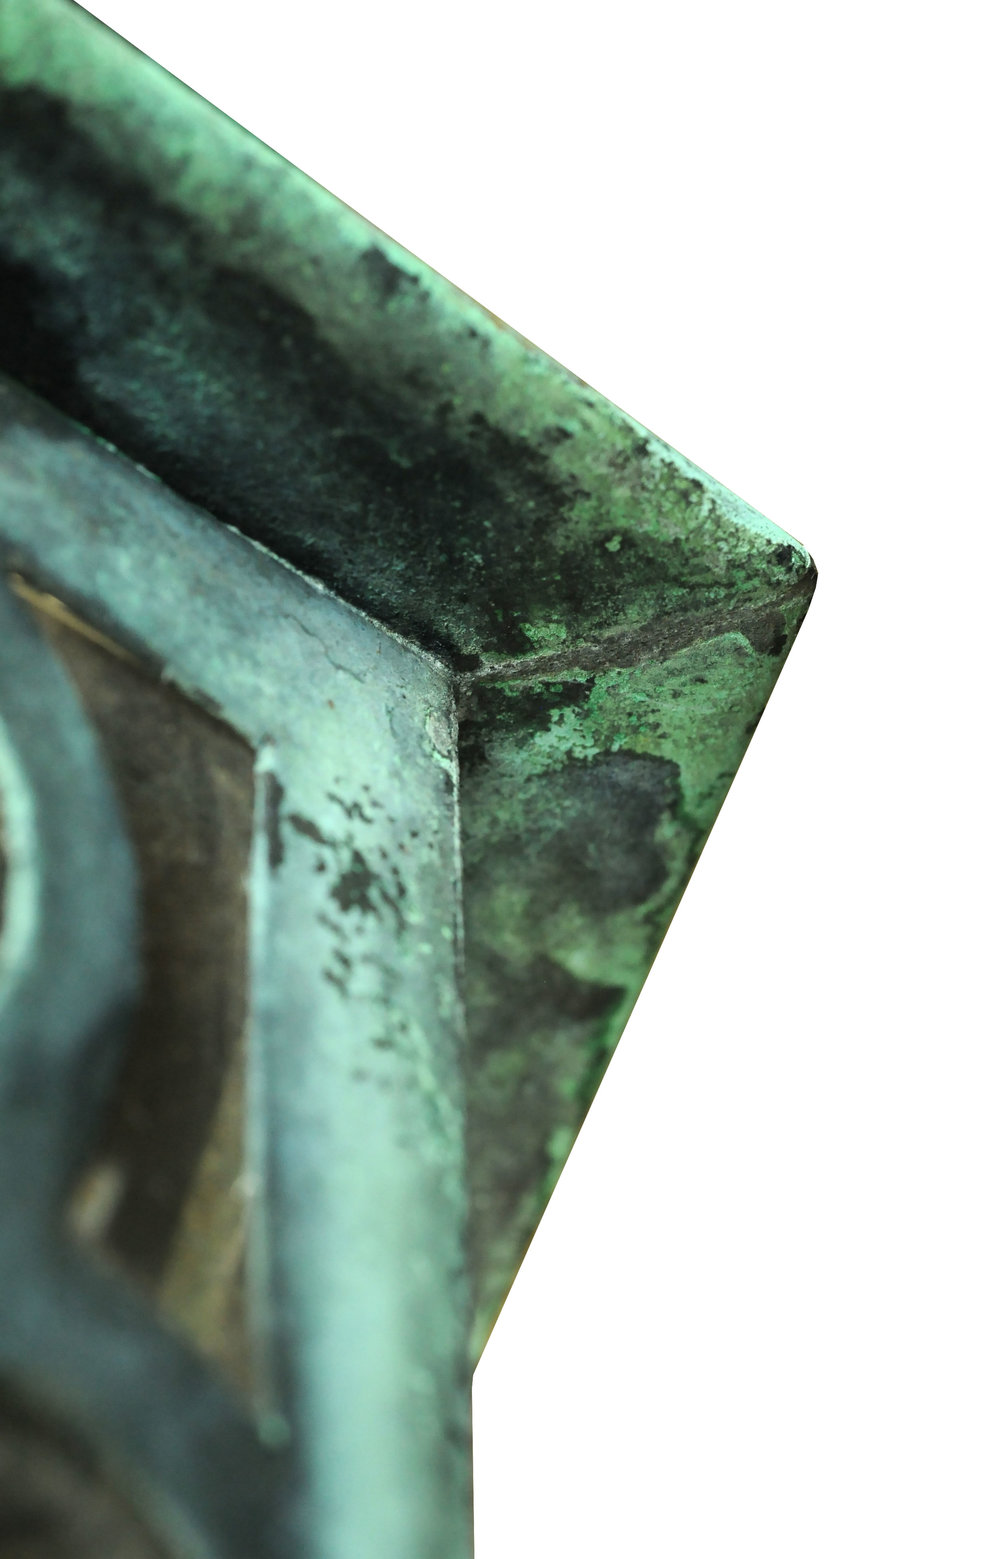 47173-copper-exterior-sconce-patina-macro.jpg